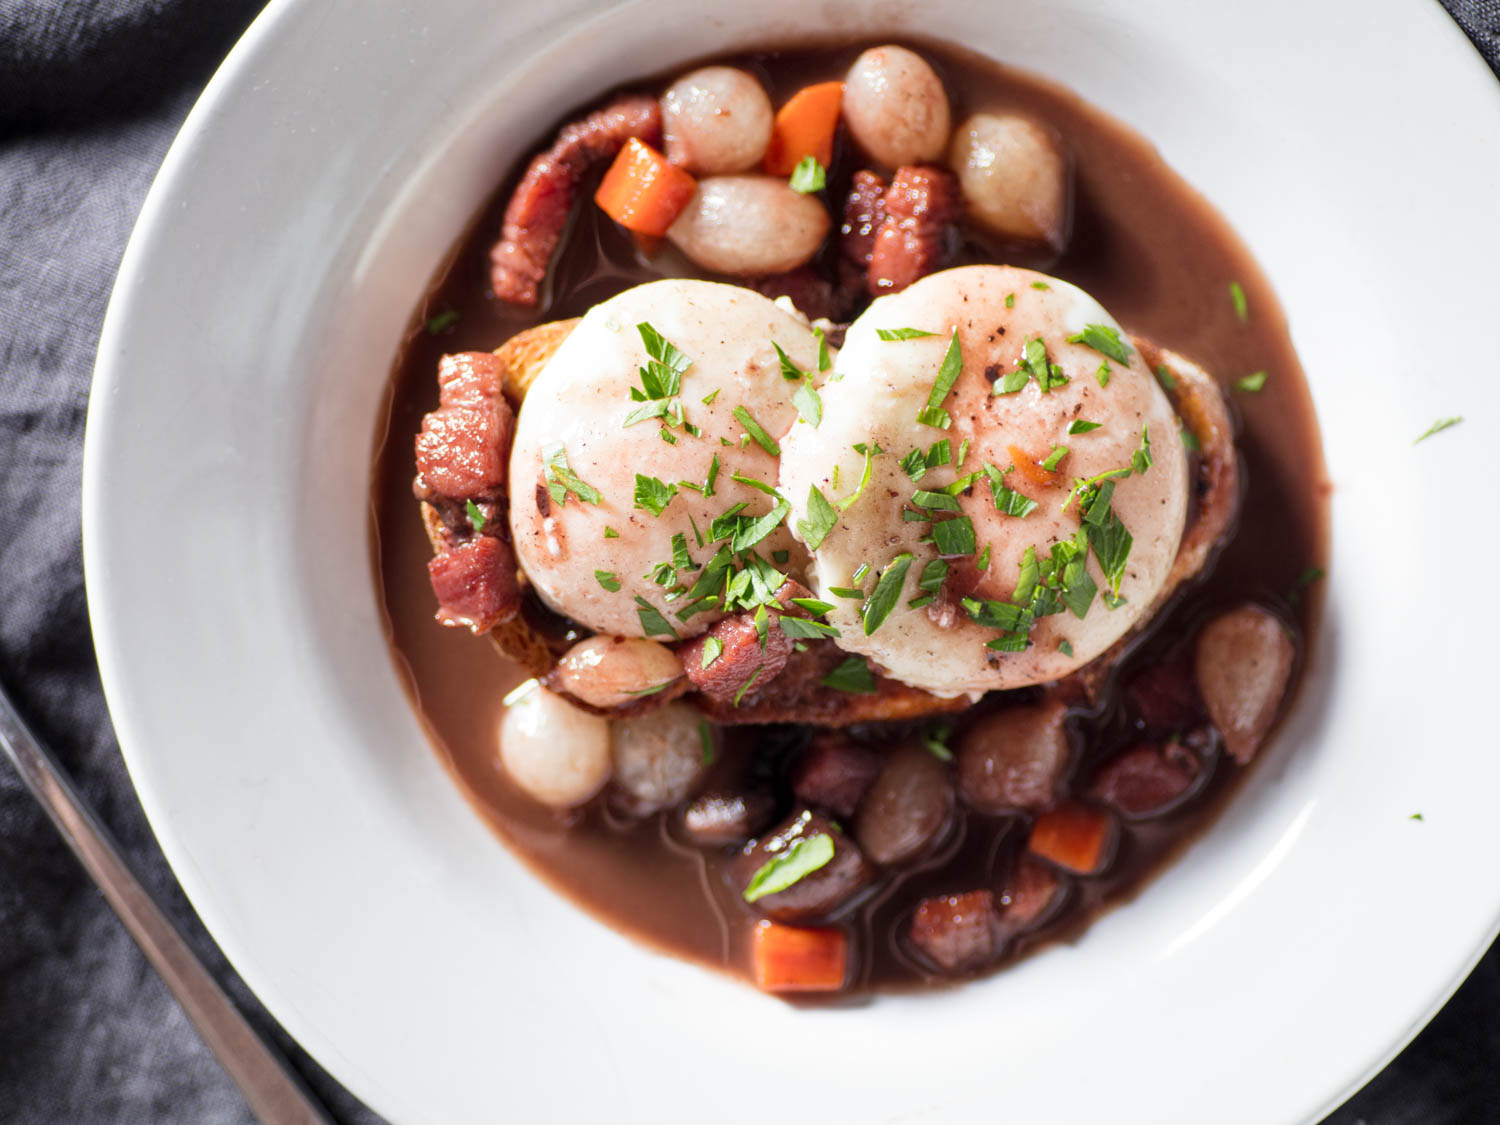 Eggs en Meurette (Poached Eggs in Red Wine Sauce)